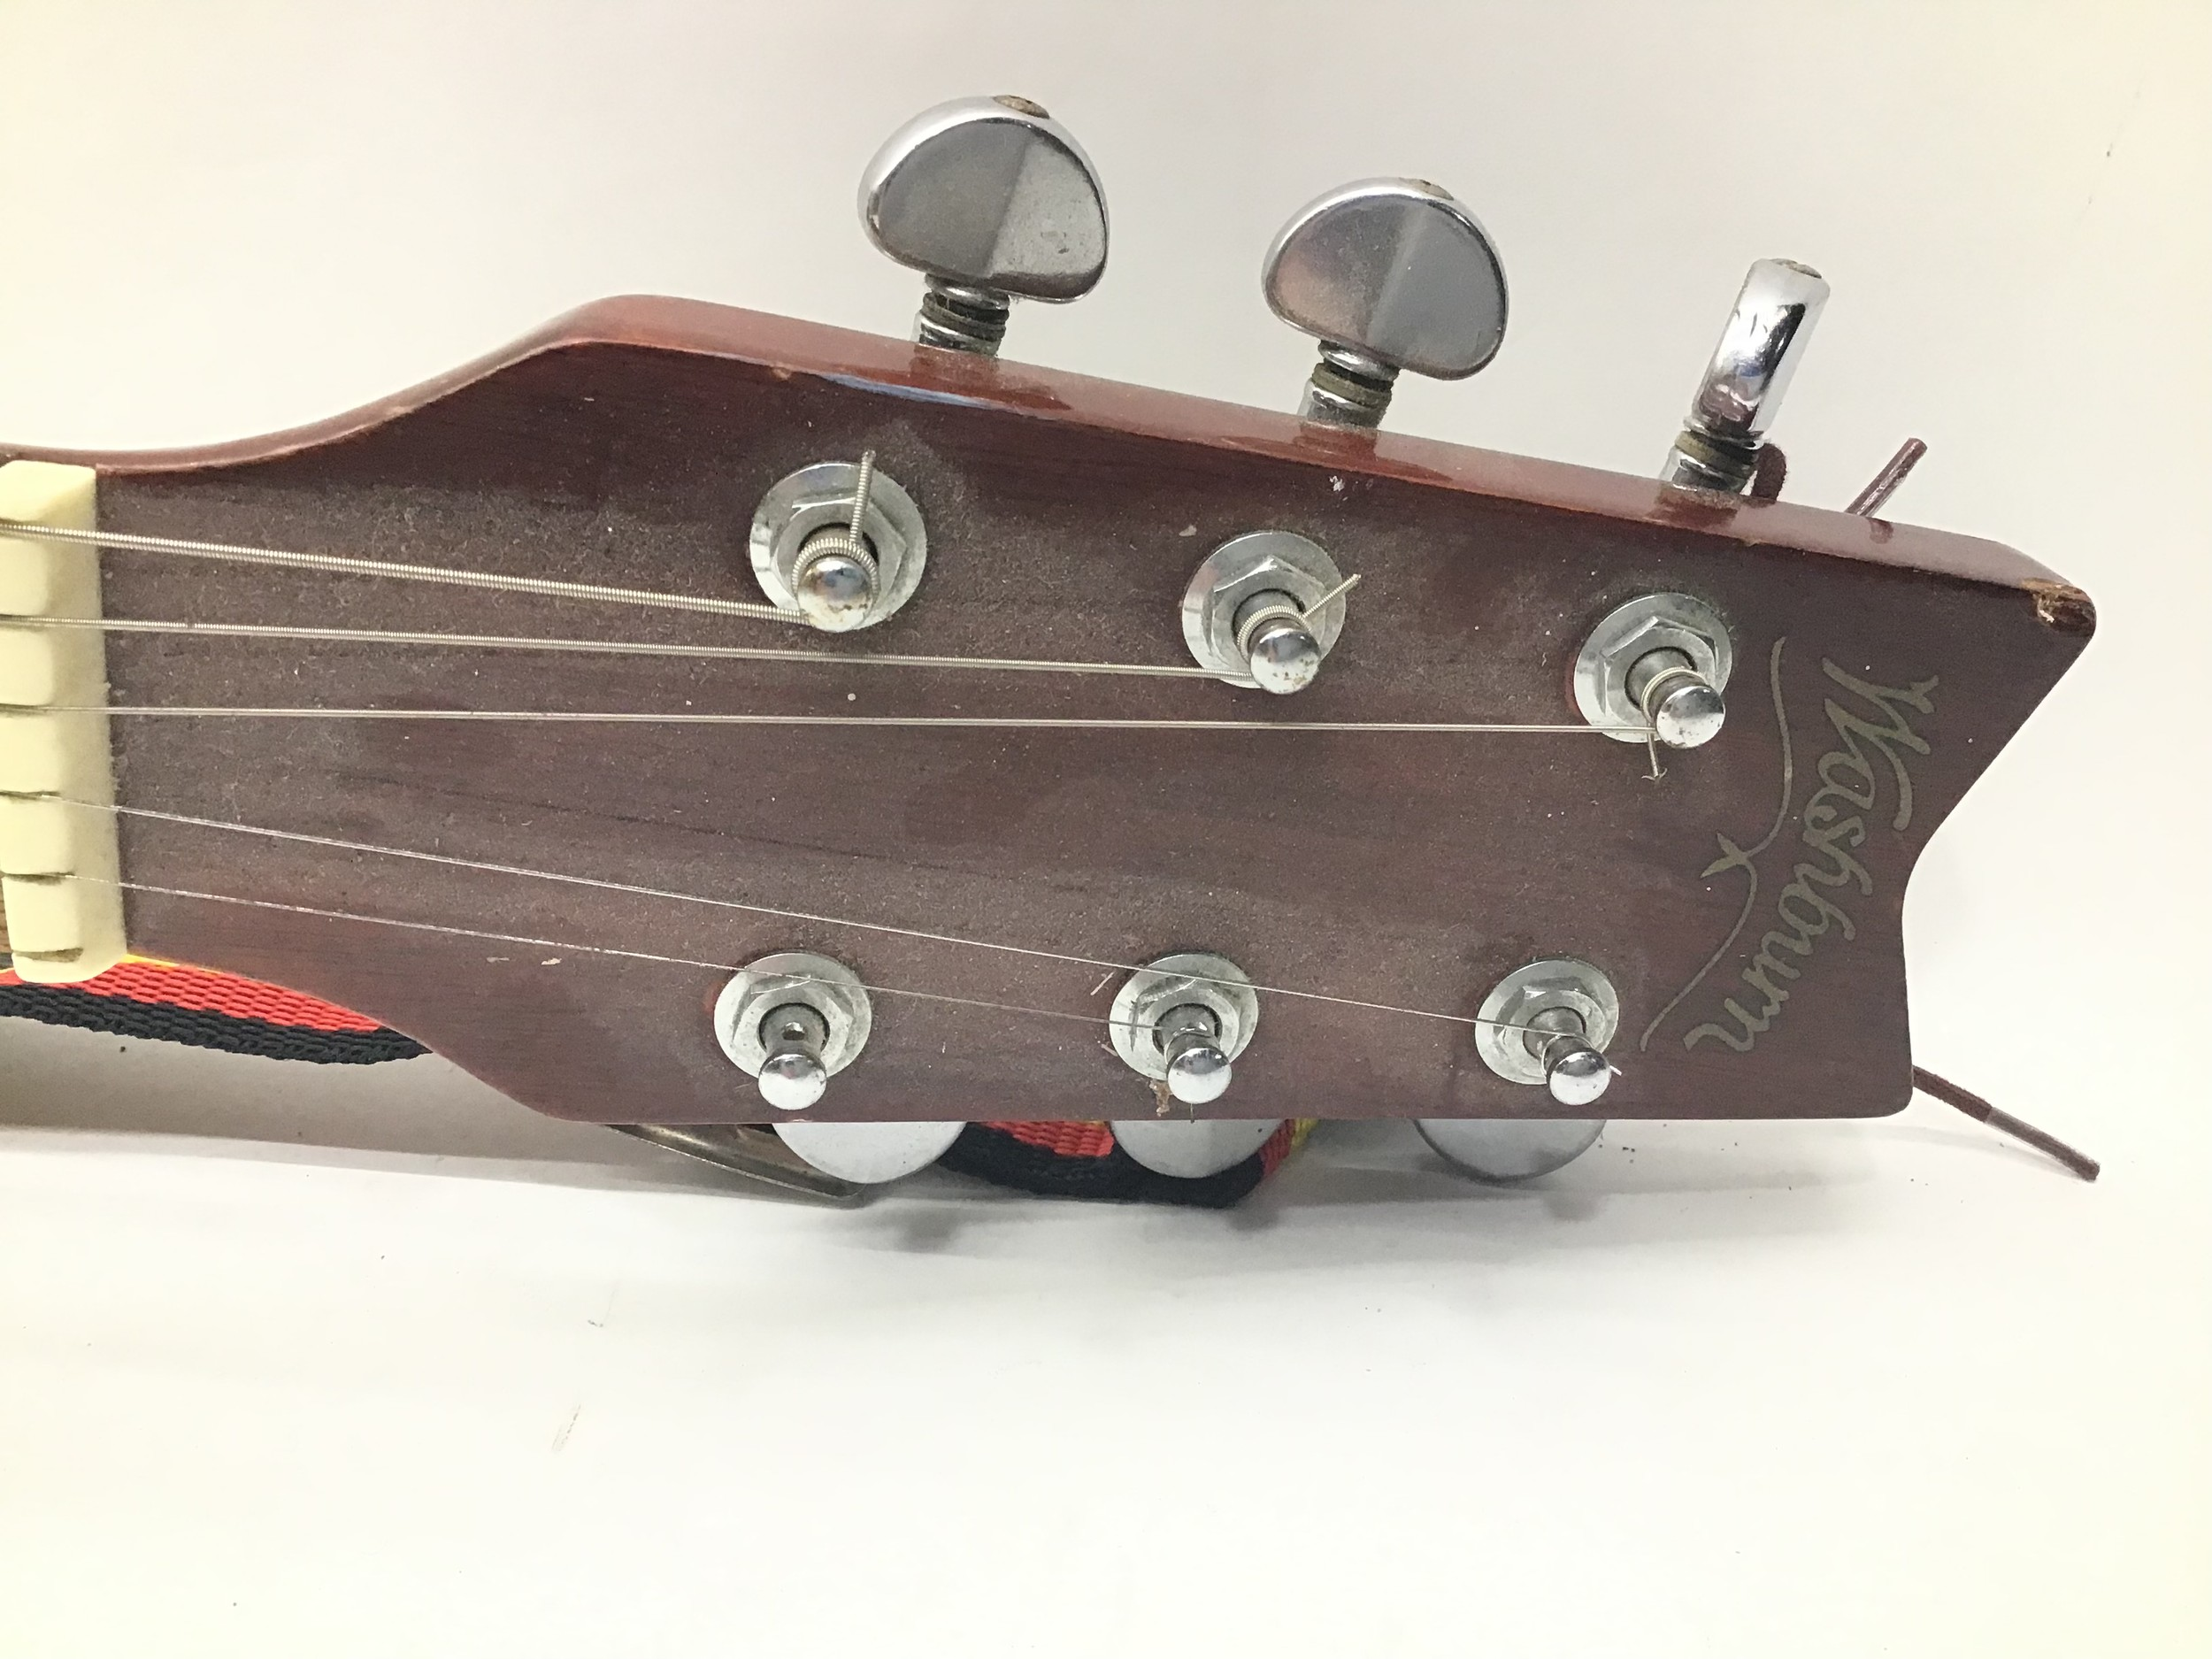 WASHBURN ACOUSTIC GUITAR. This 6 stringed guitar is finished in rosewood and comes with a strap. - Image 2 of 6